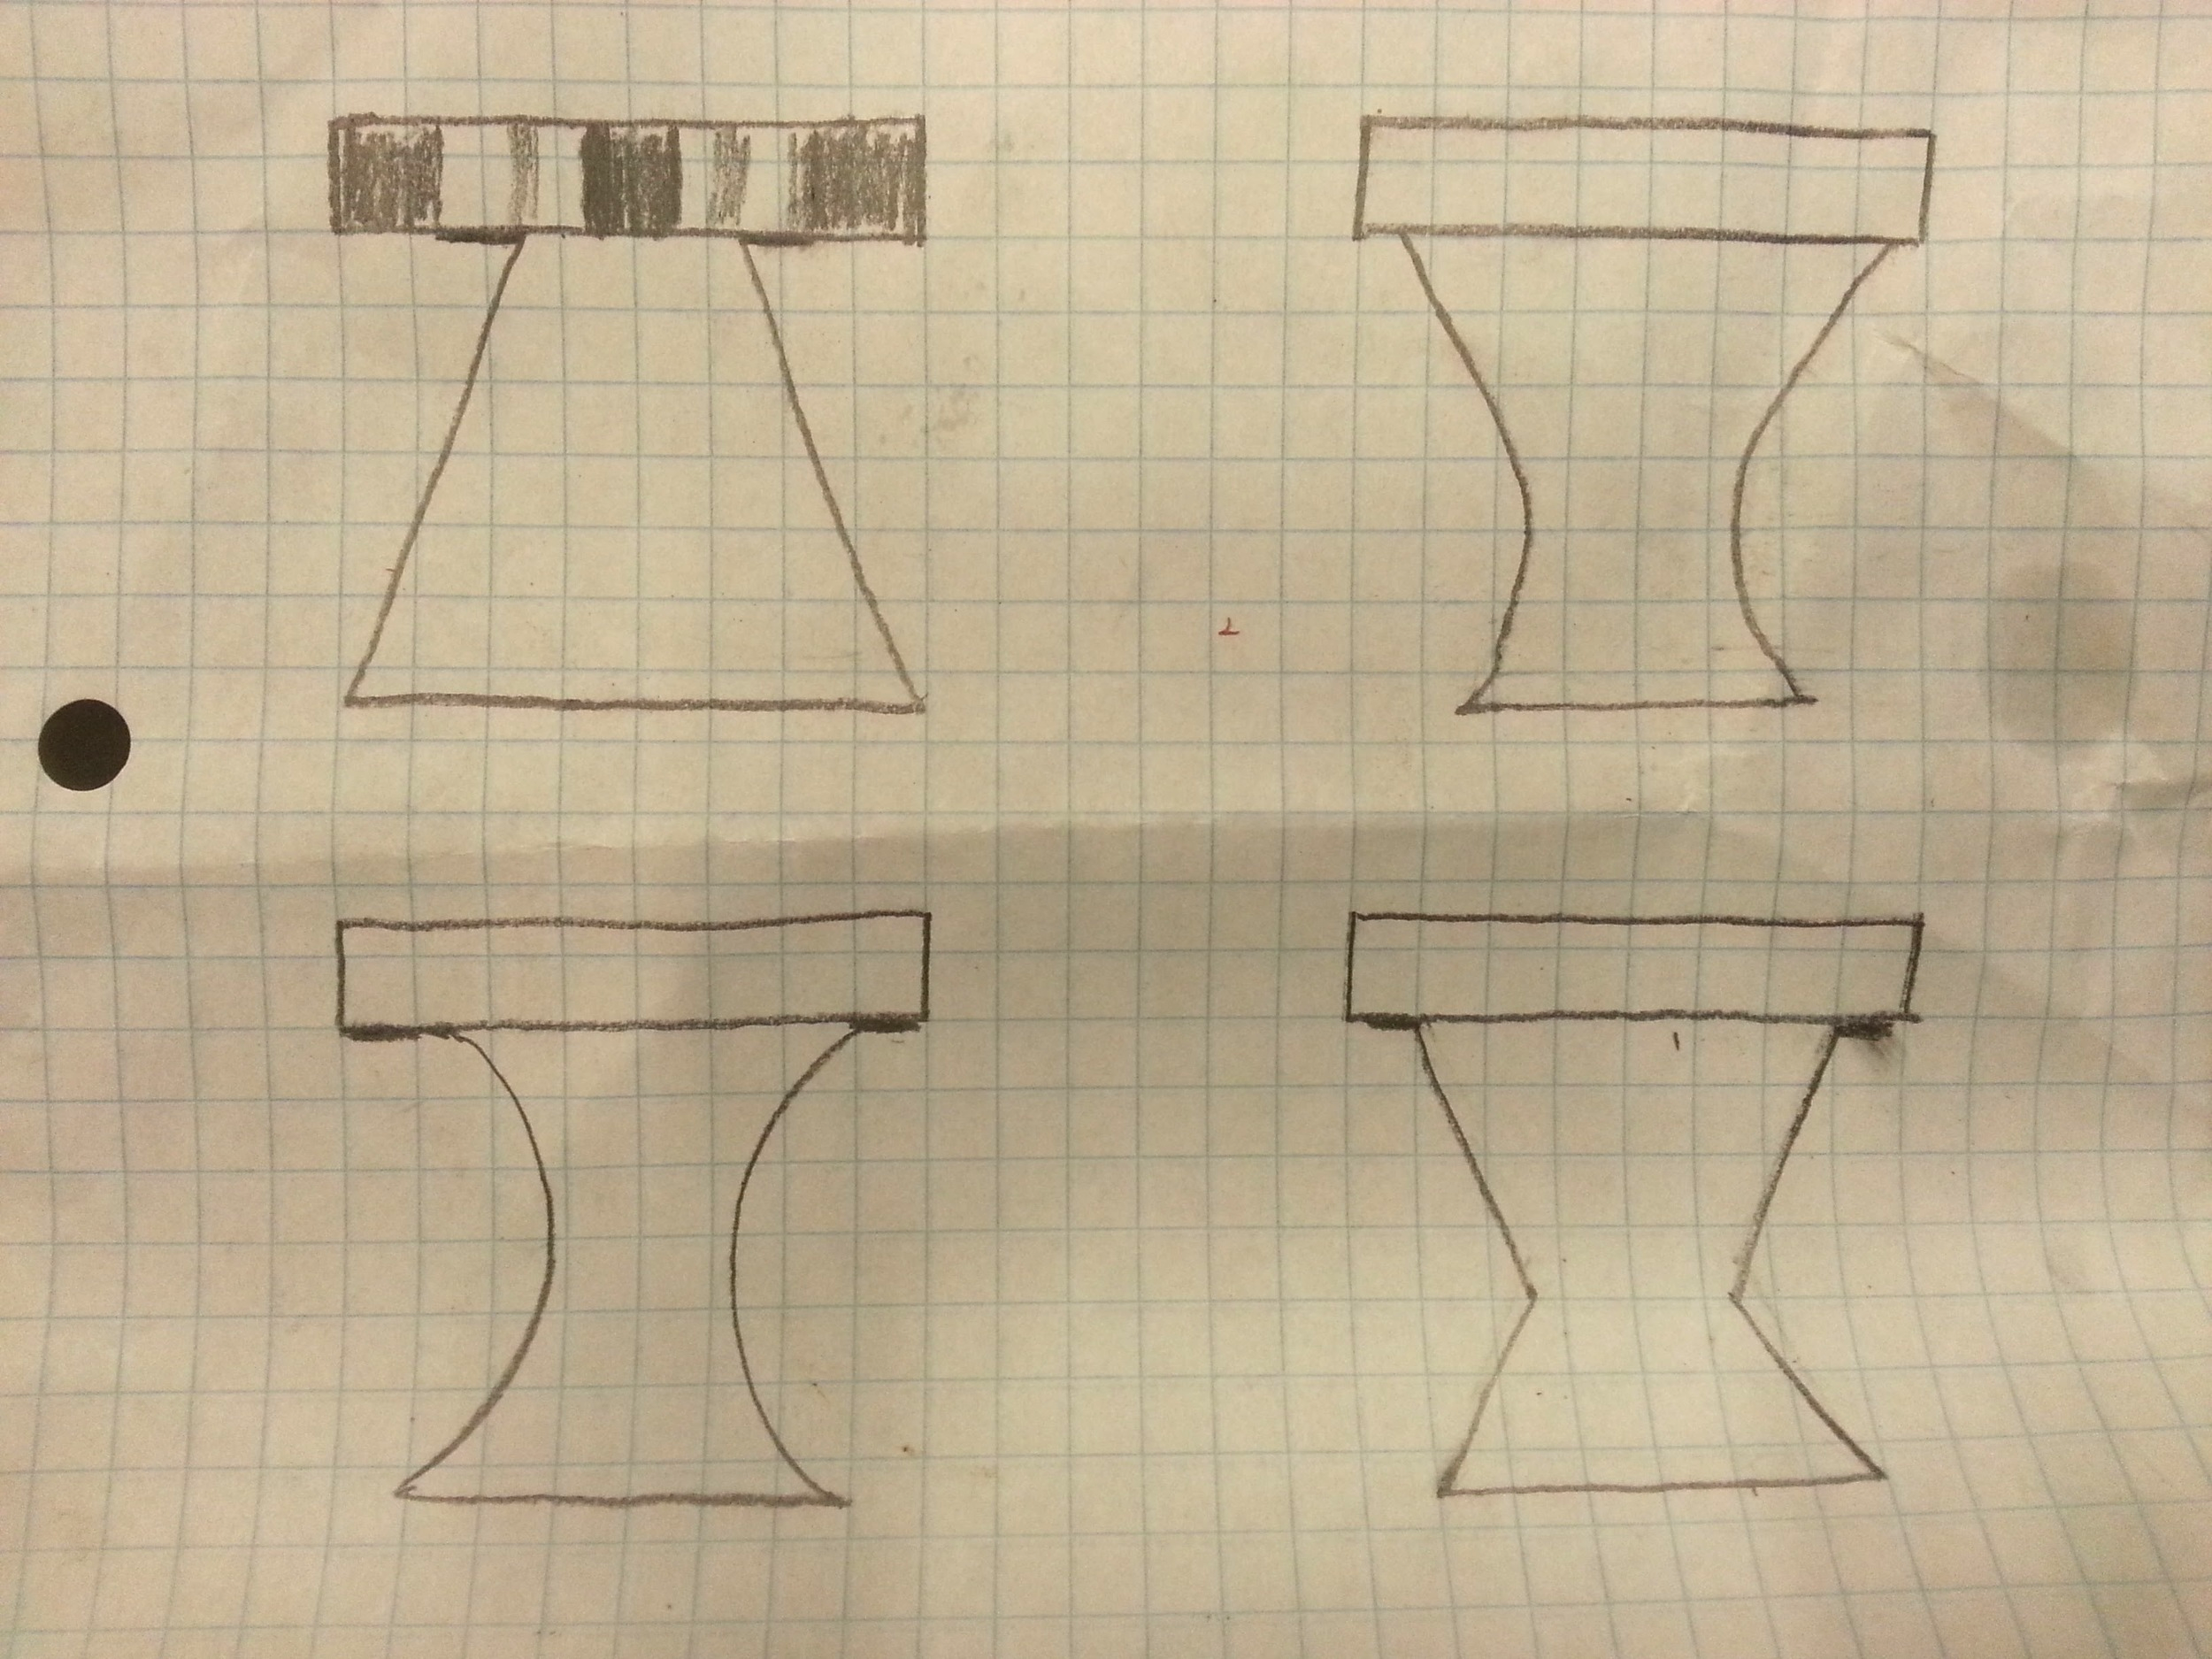 Profile sketches of the laminate pattern of the coffee table, and possible leg configurations. Spoiler alert: I went with the upper-left pattern.